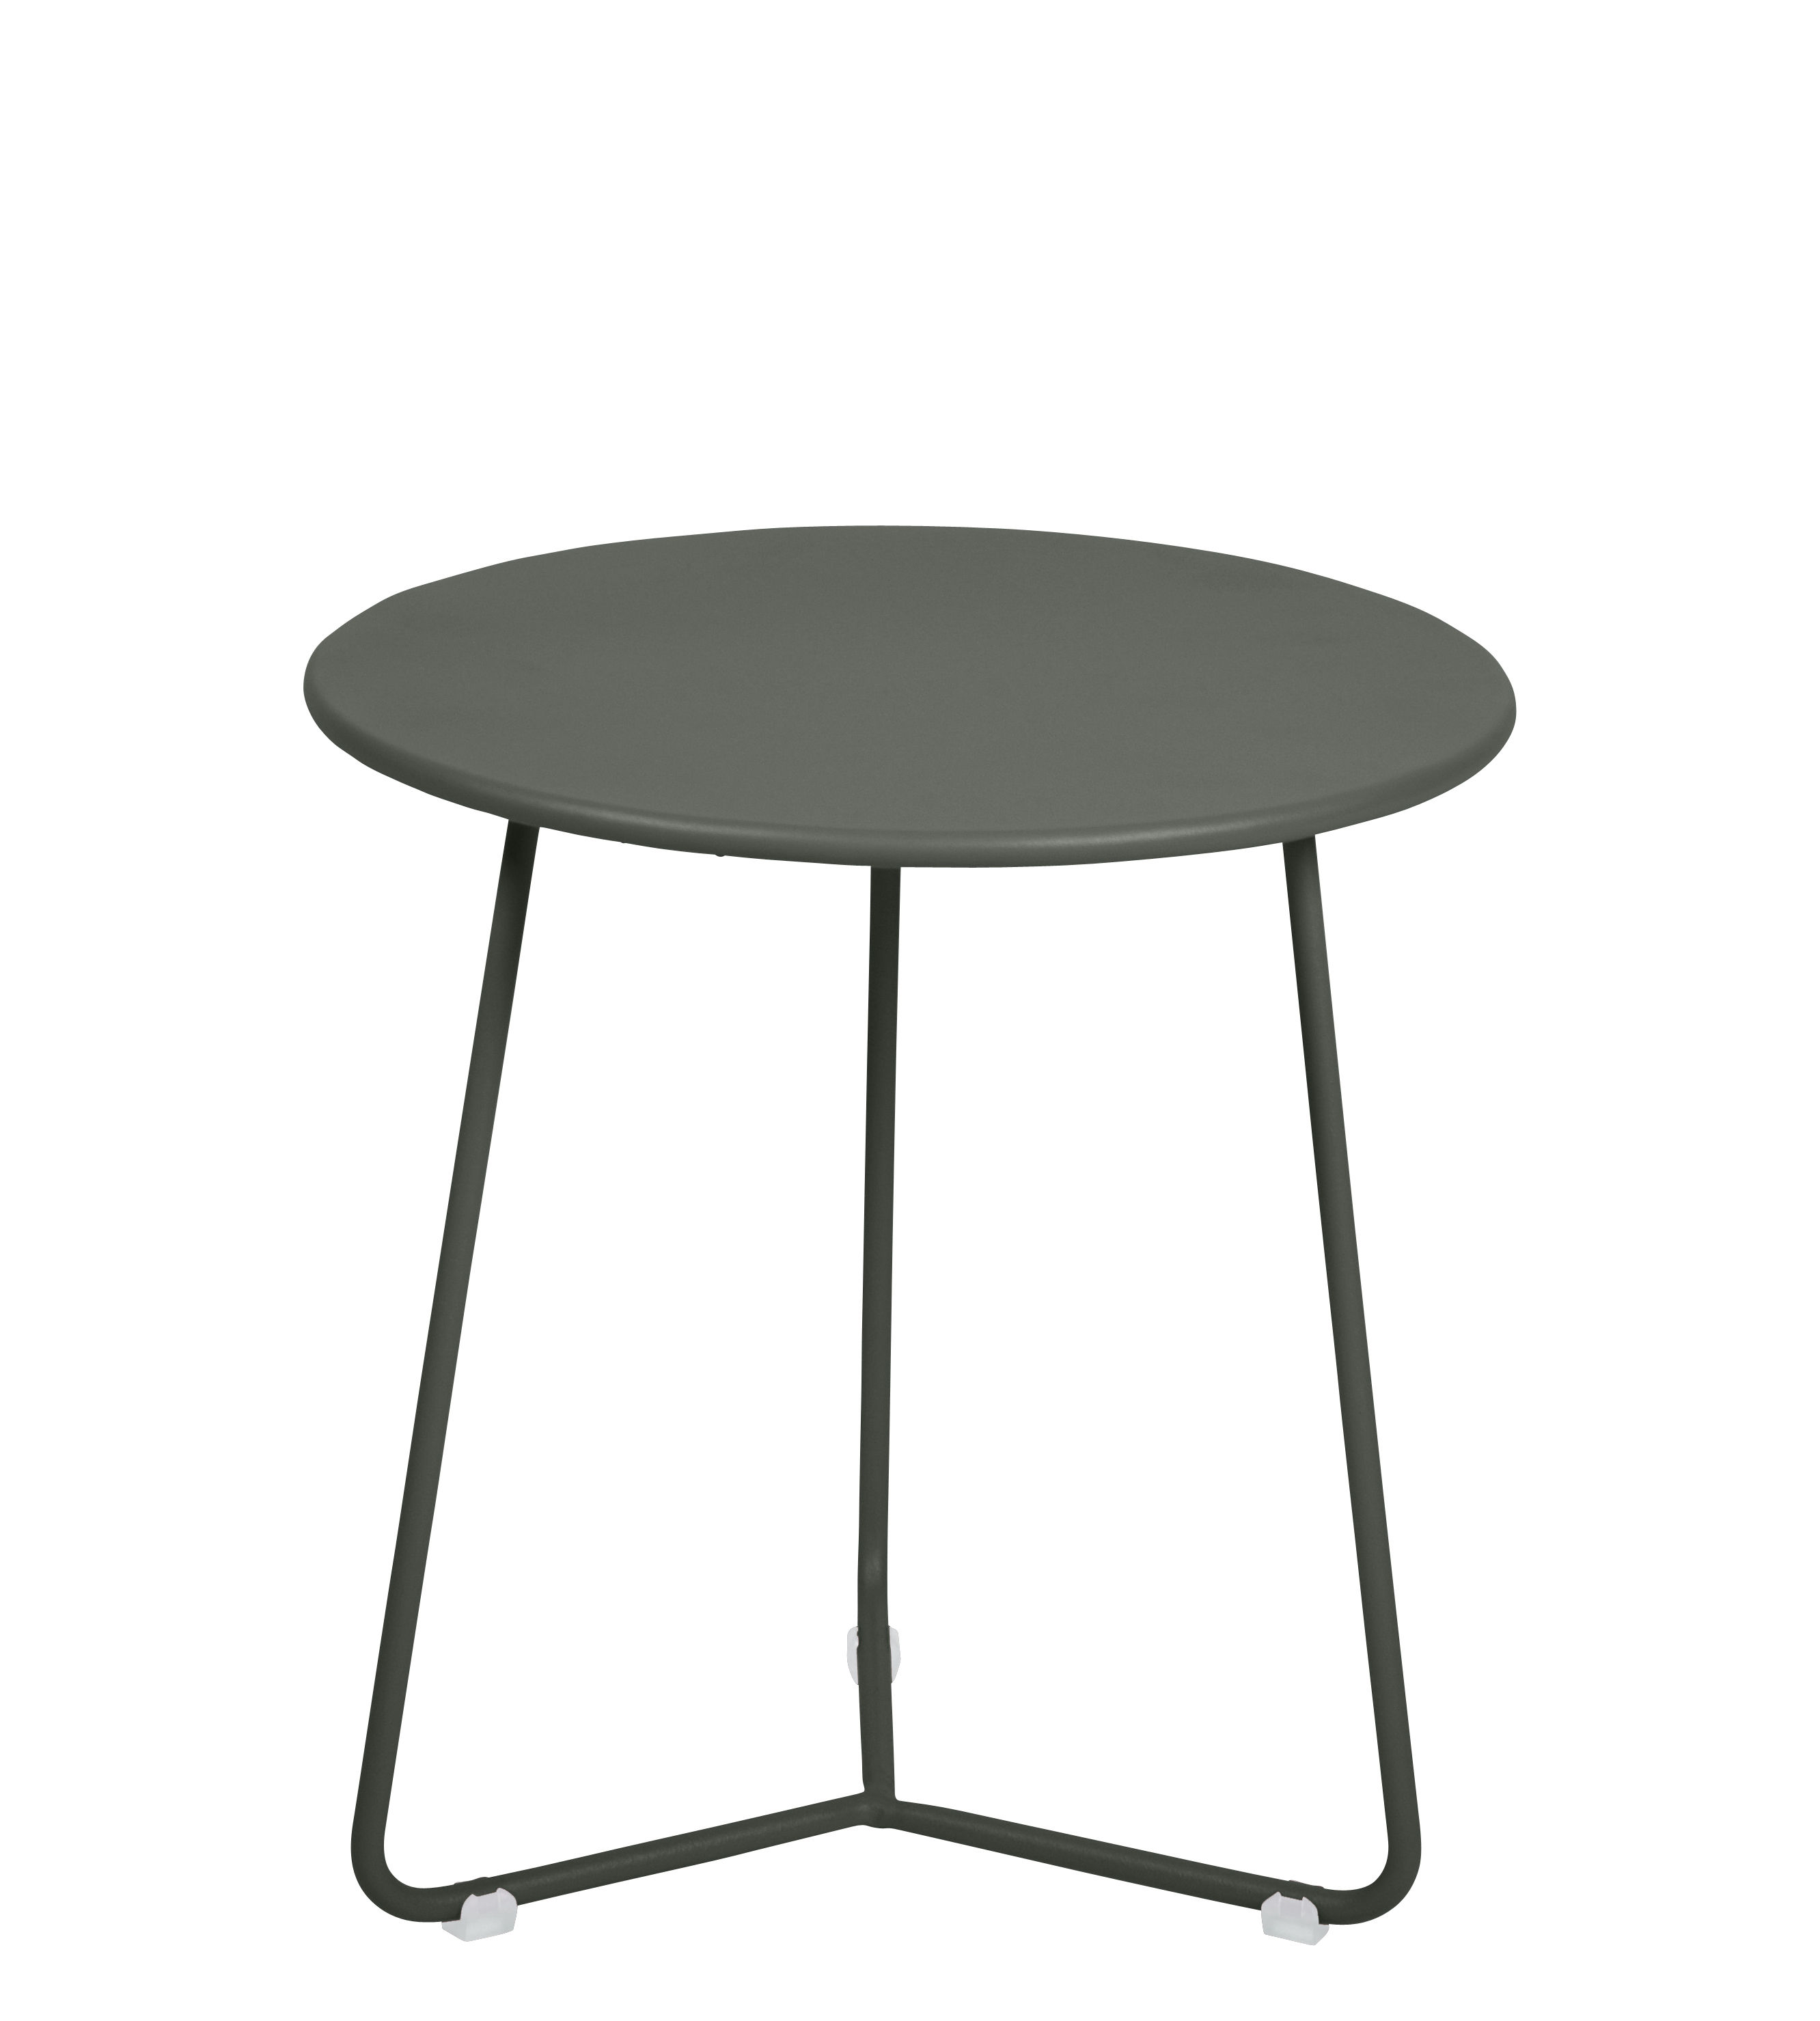 Furniture - Coffee Tables - Cocotte End table - / Stool - Ø 34 x H 36 cm by Fermob - Rosemary - Painted steel